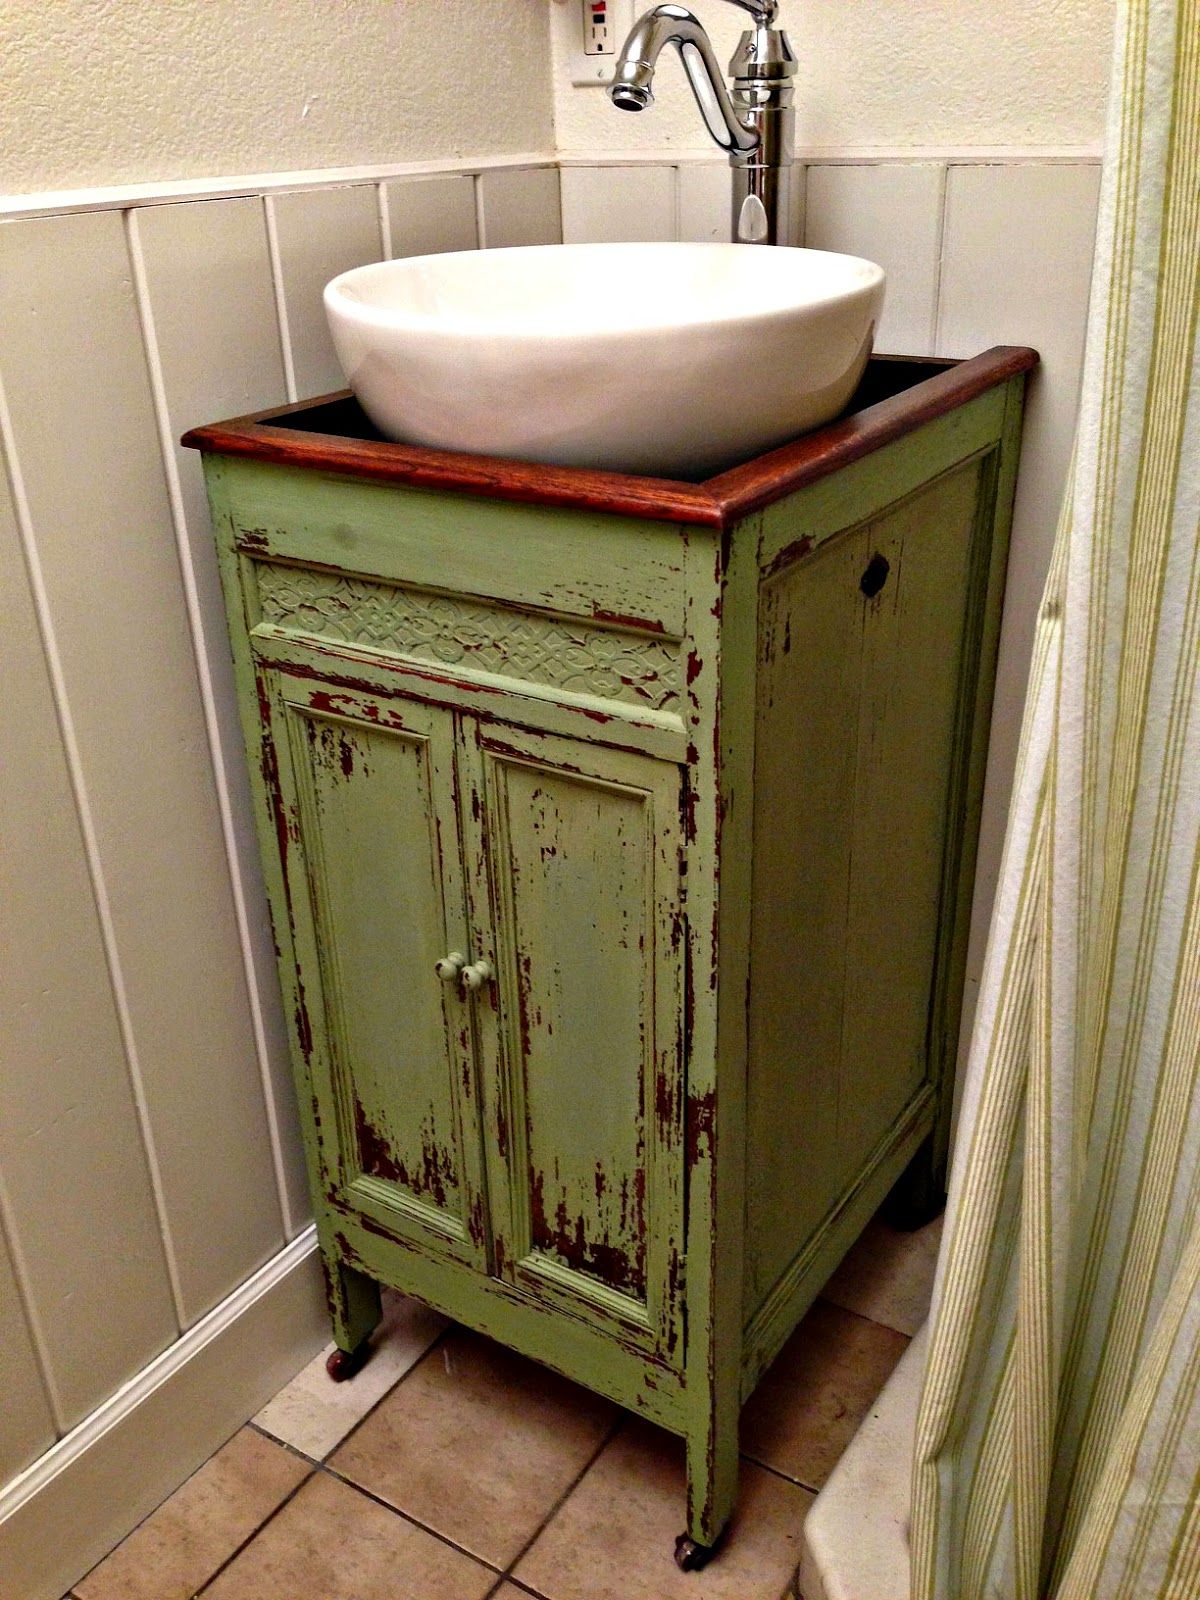 10 Creative And Repurposed Ideas For Alternative Bathroom Vanities Unique Bathroom Vanity Cheap Bathroom Vanities Small Bathroom Vanities